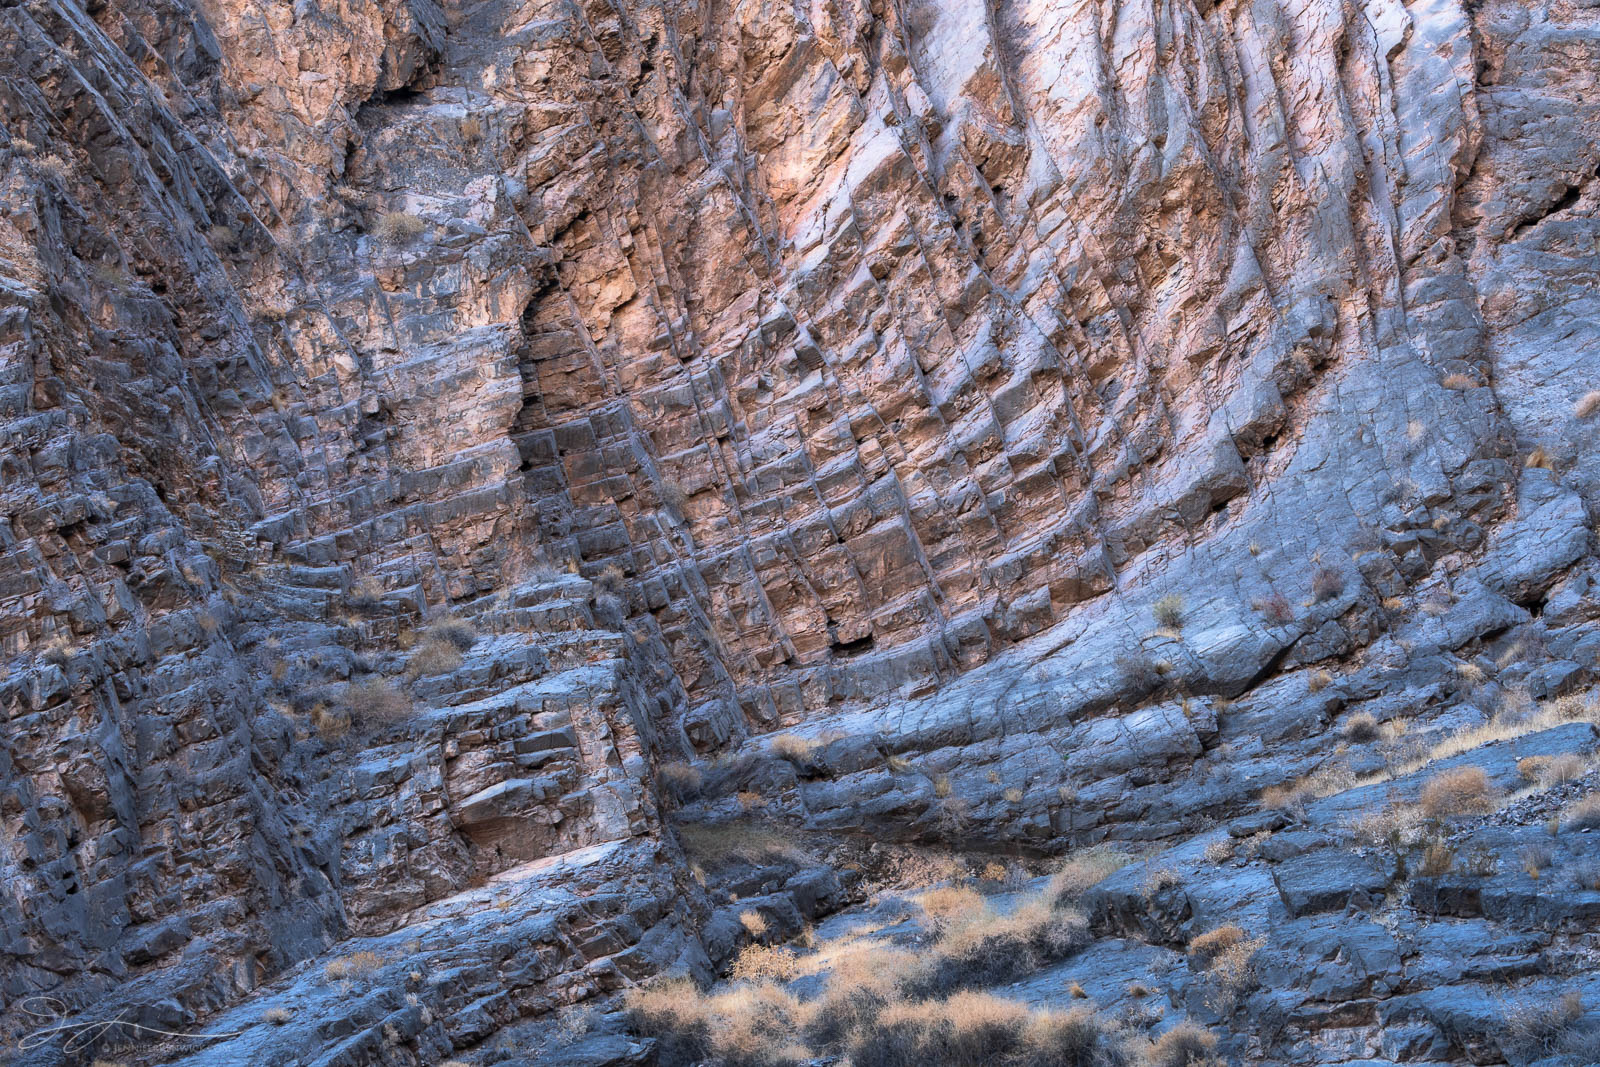 Layers and soft light adorn a remote canyon wall in the desert.